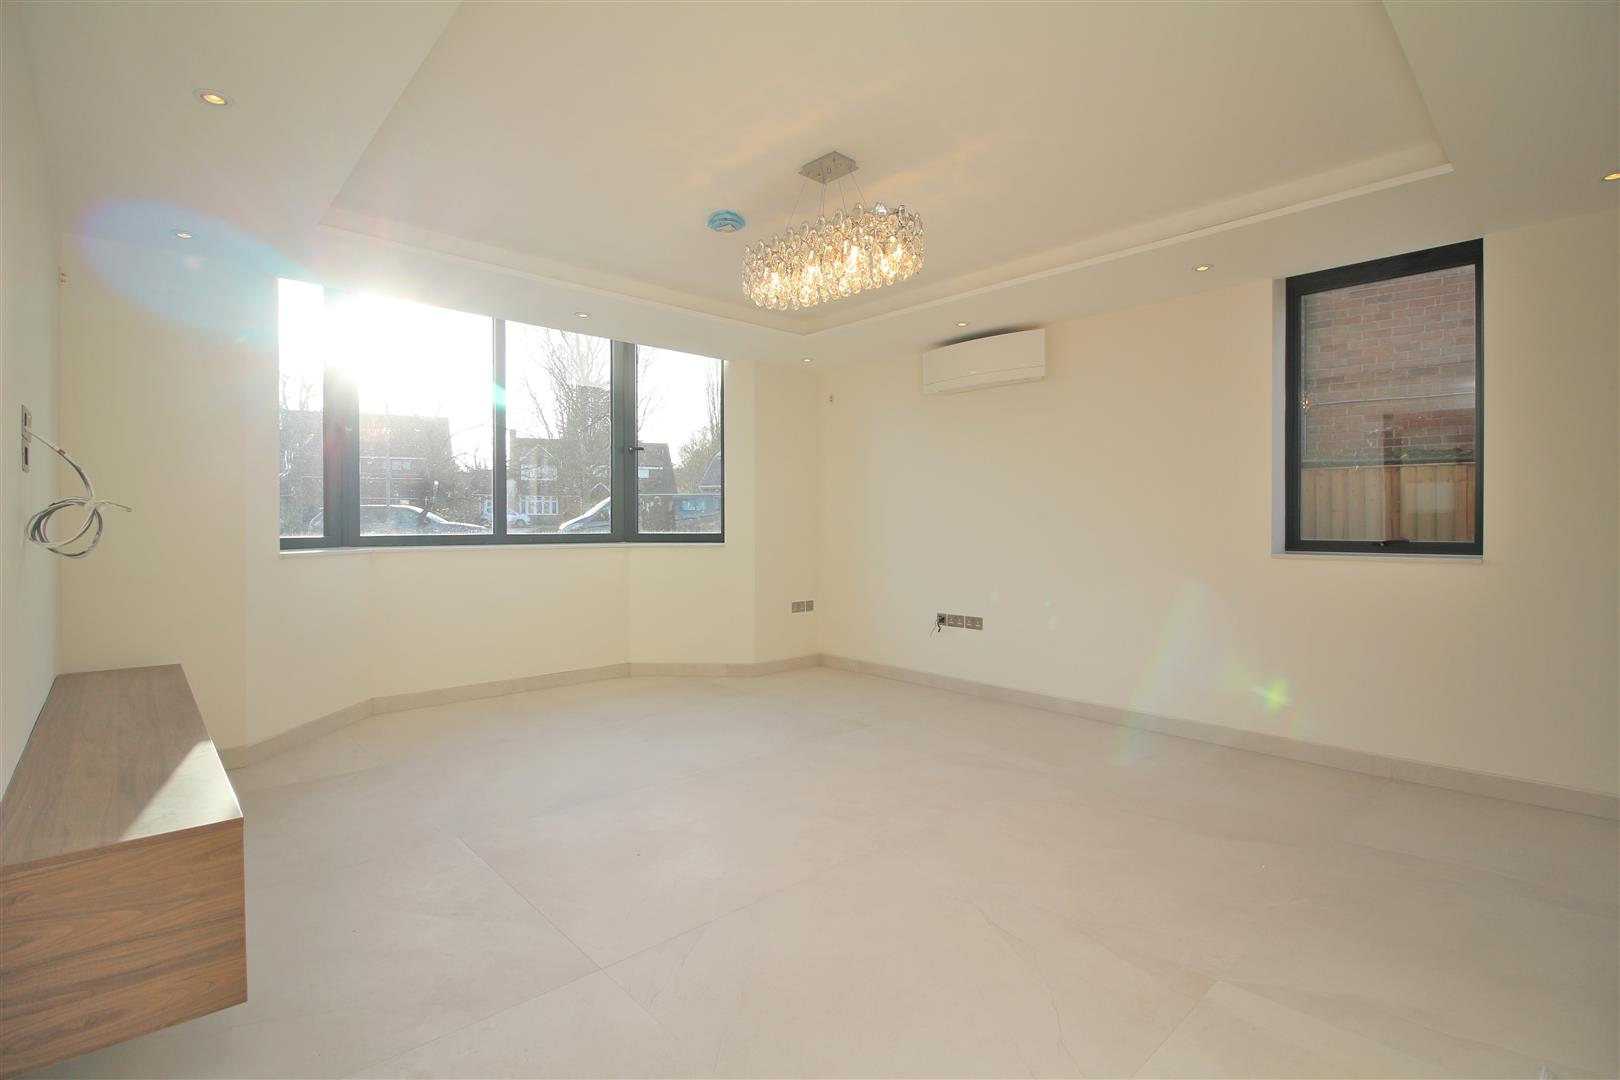 7 bed to rent - (Property Image 4)